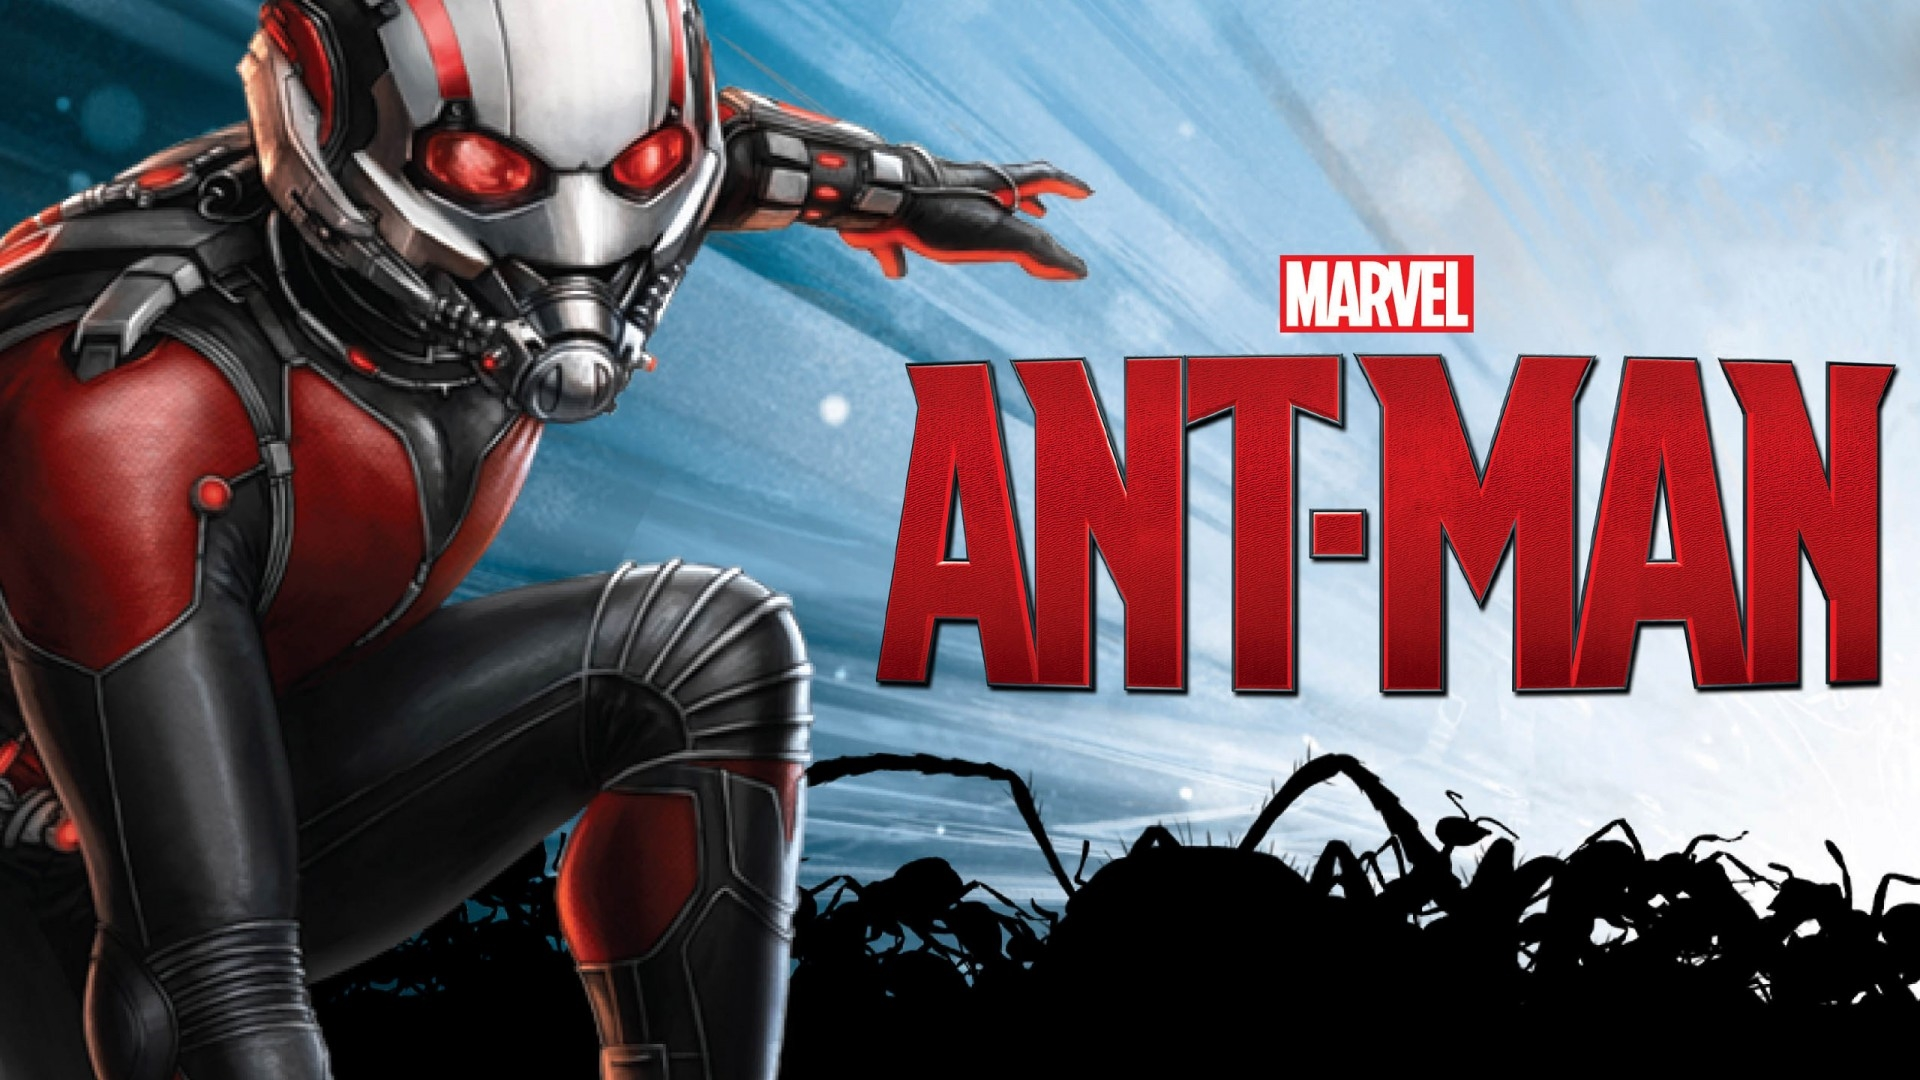 marvel ant man 2015 movie poster wallpaper